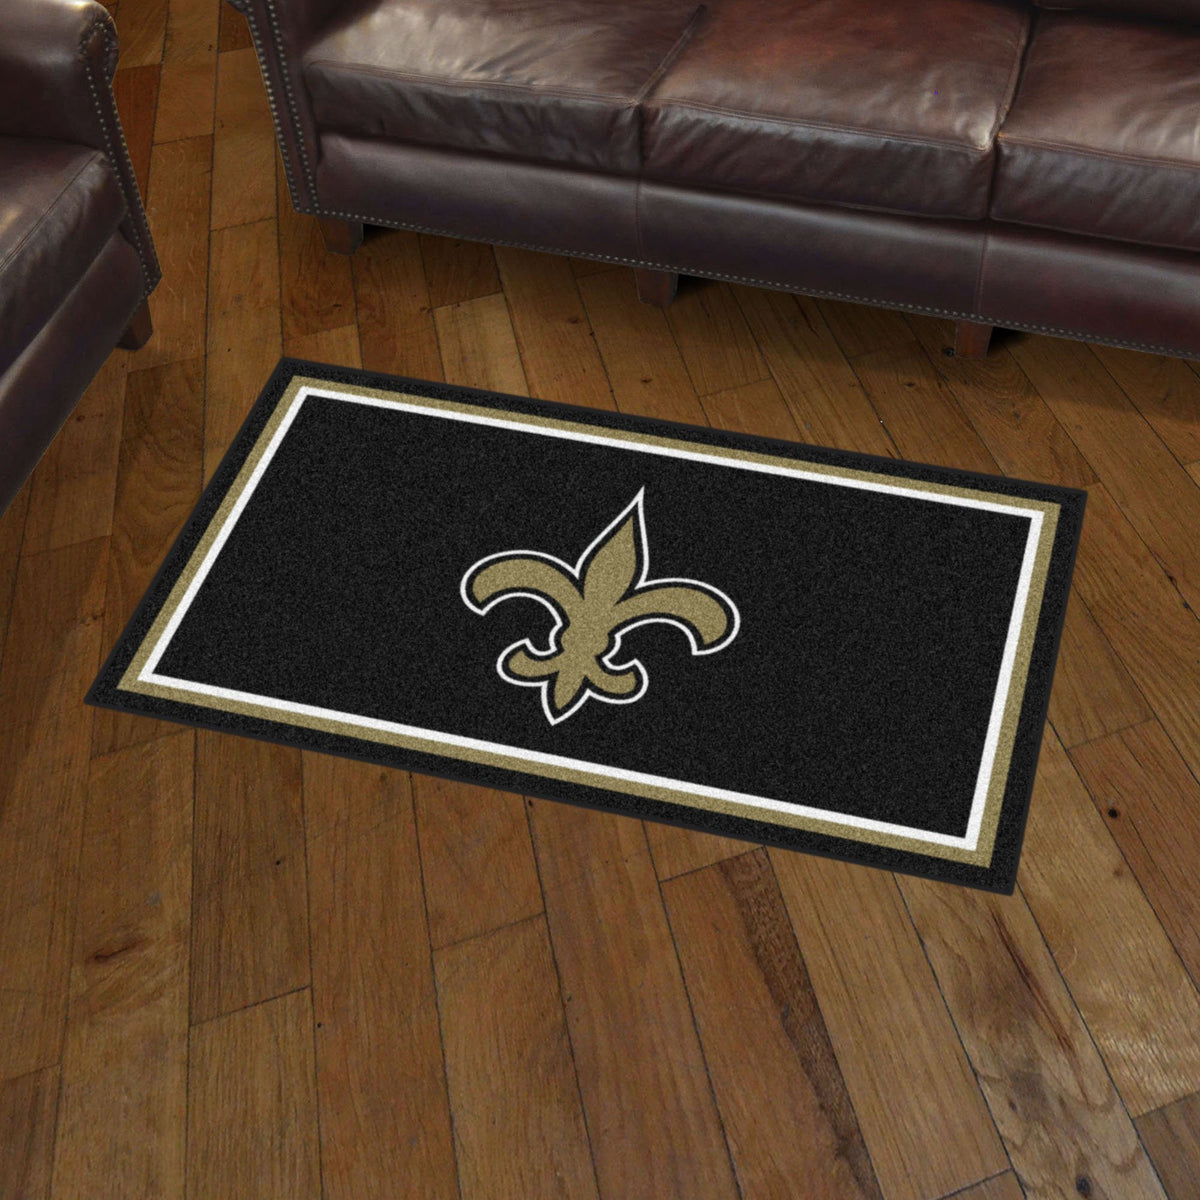 NFL - 3' x 5' Rug NFL Mats, Plush Rugs, 3x5 Rug, NFL, Home Fan Mats New Orleans Saints